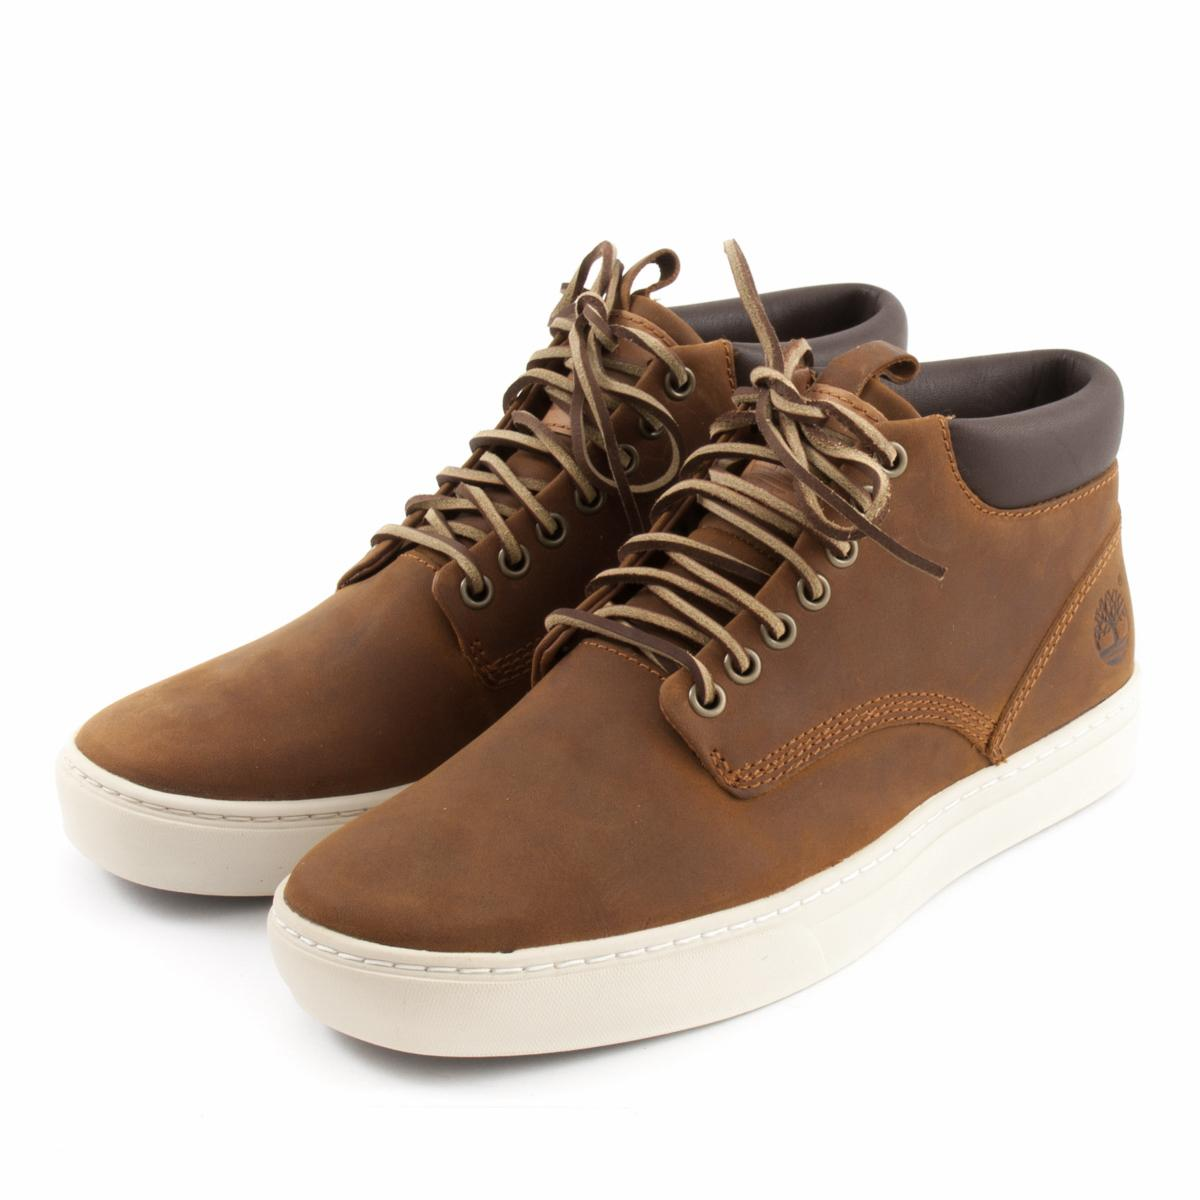 Buy your Boots TIMBERLAND Earthkeepers Adventure Cupsole Chukka ... 2d3633ffbdb0